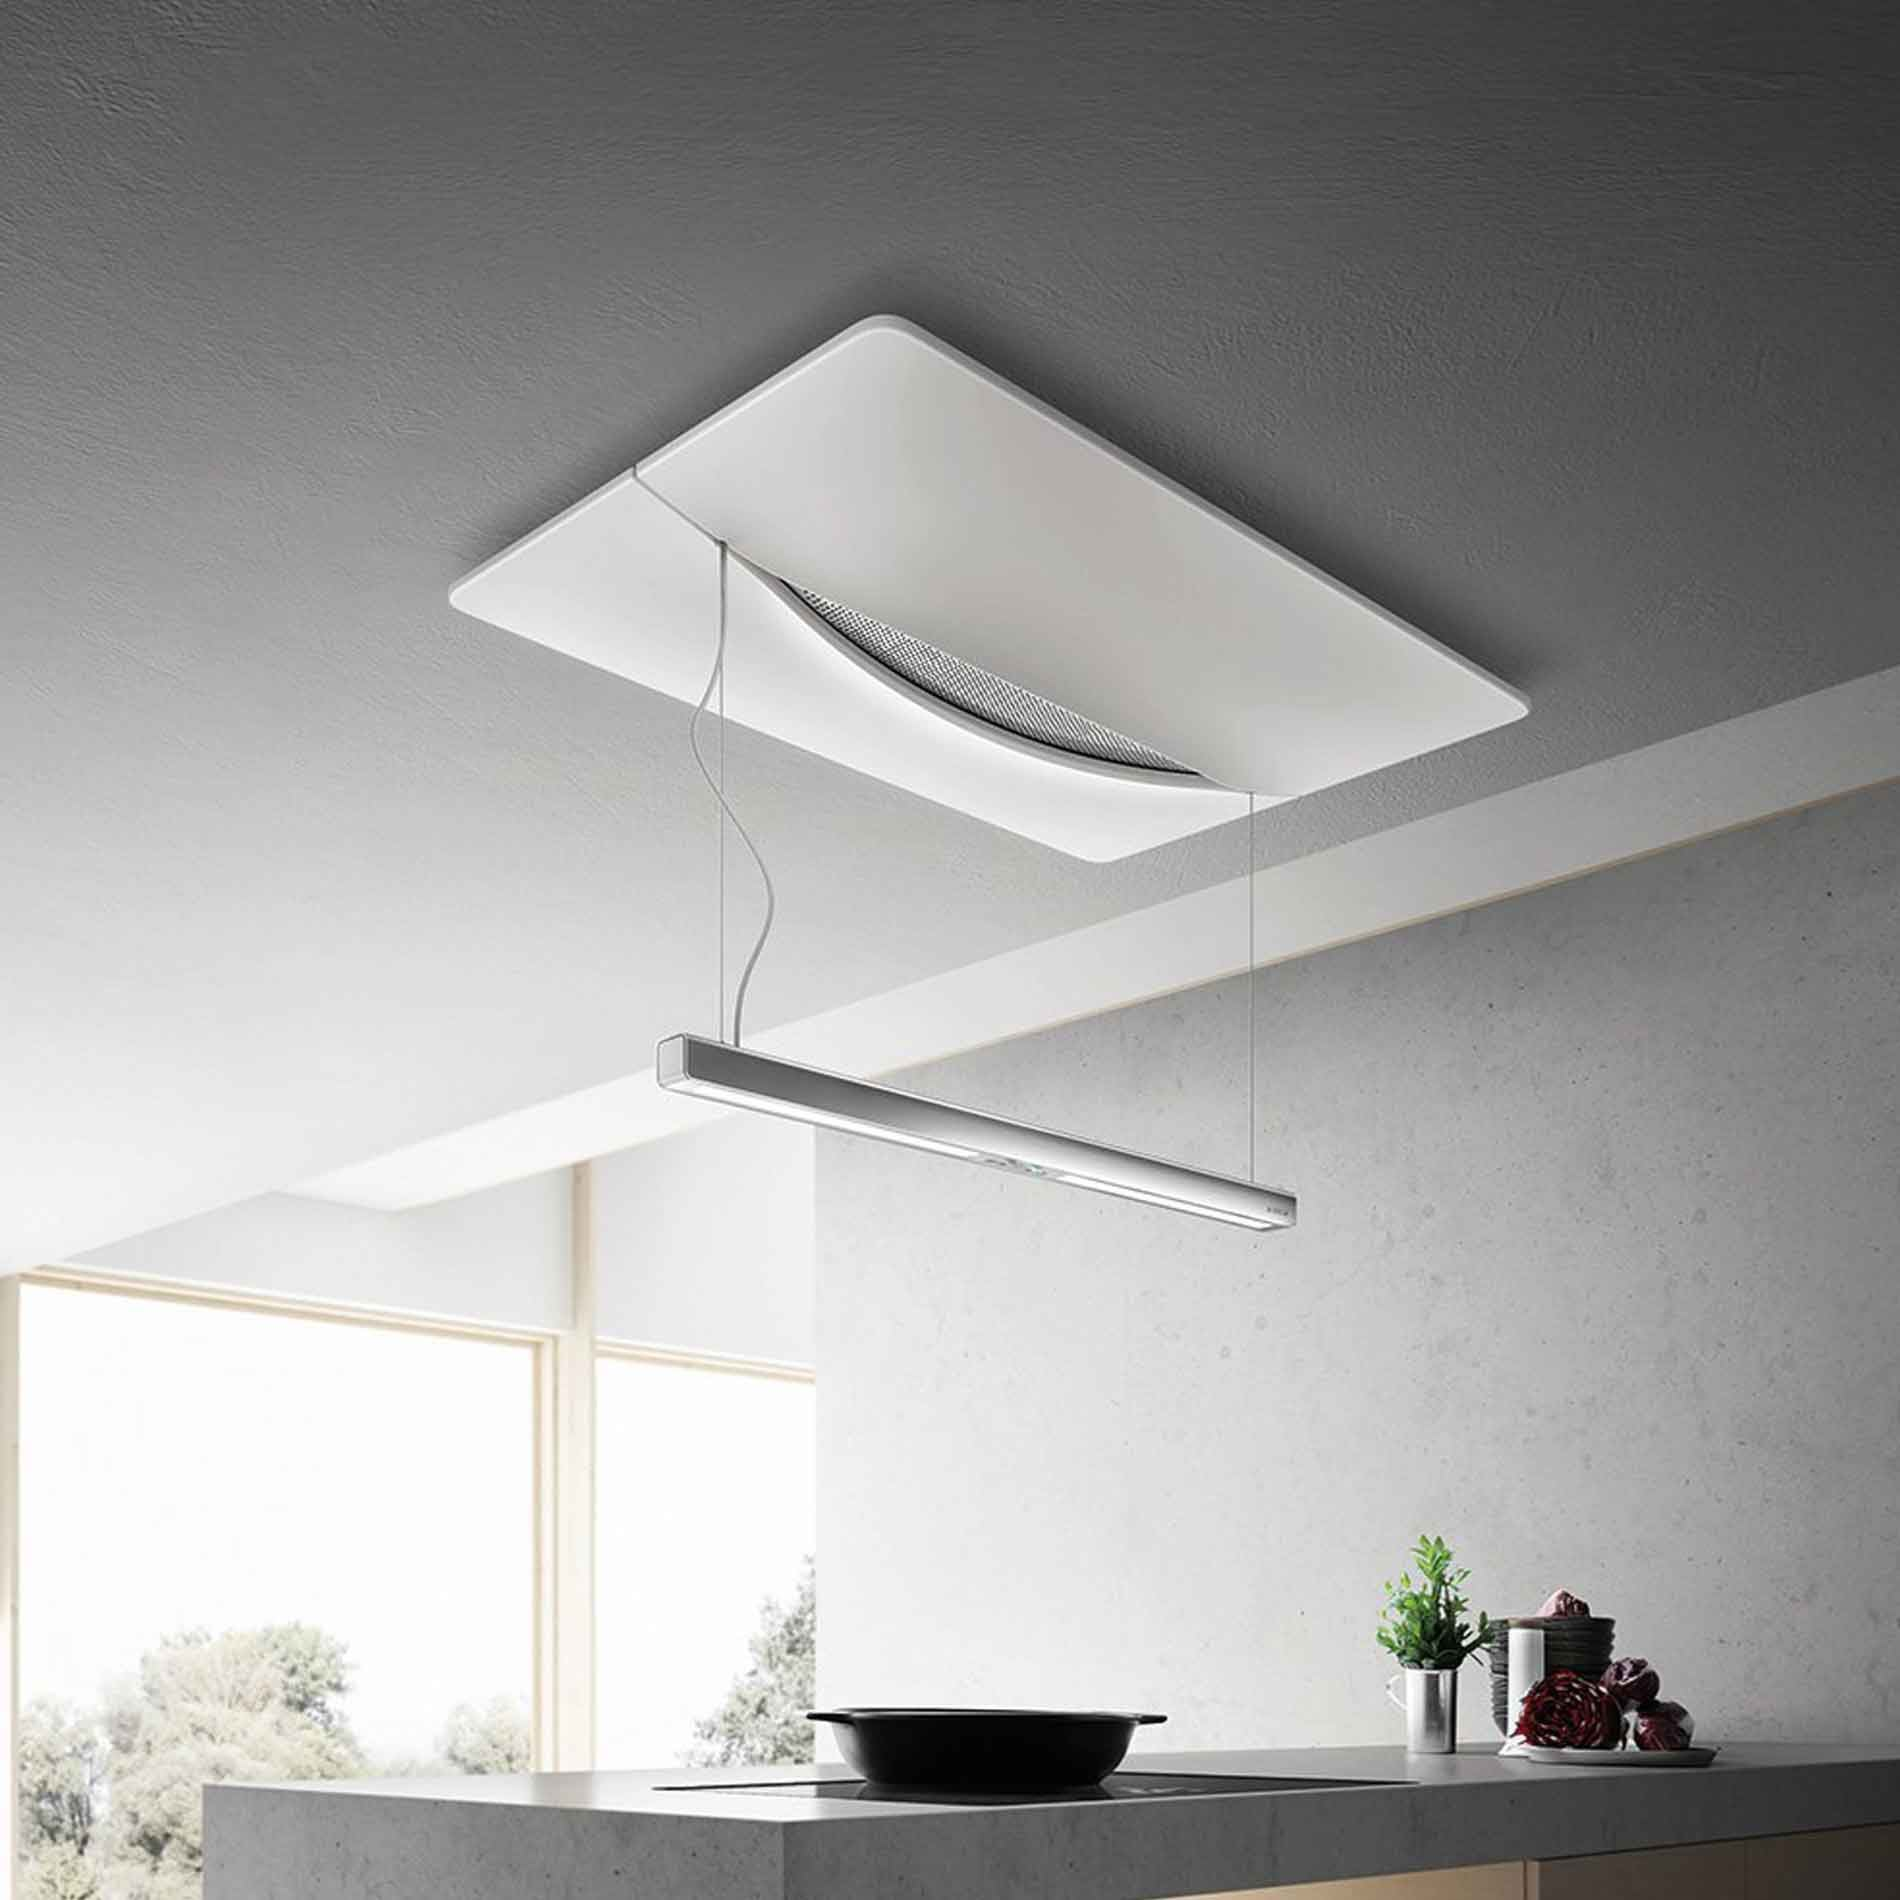 elica: empty sky techne ceiling hood - duct out version